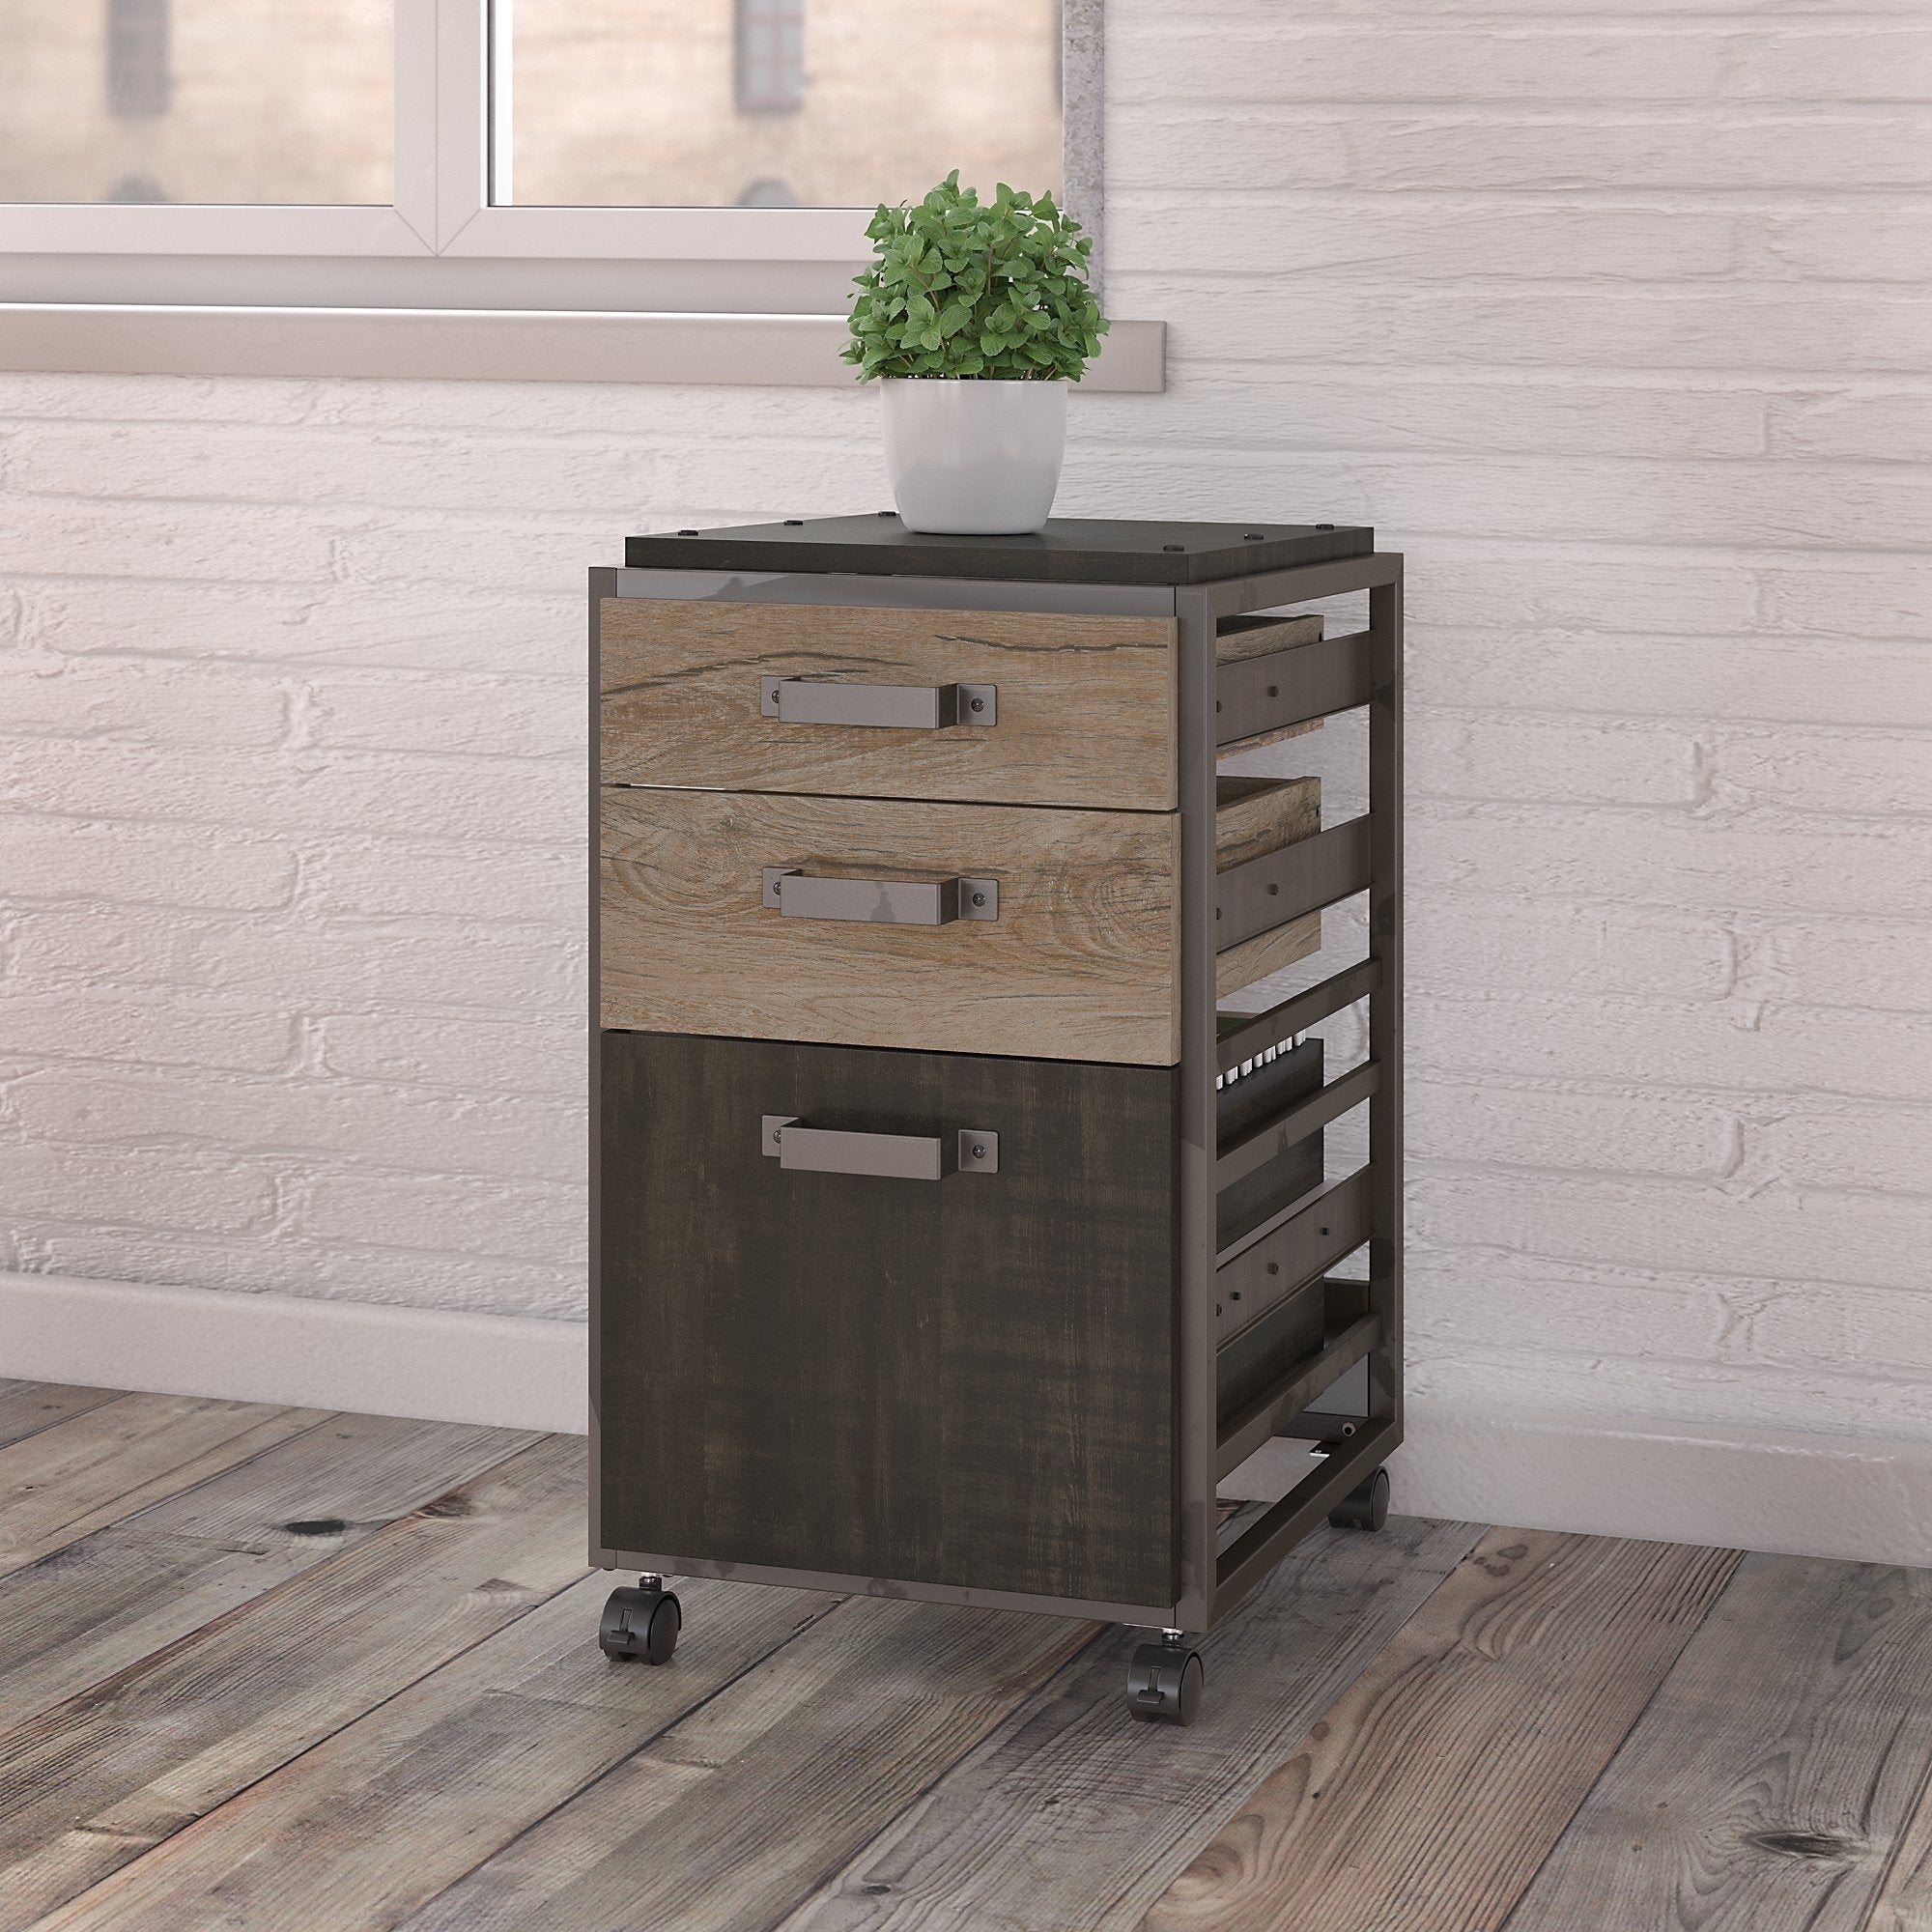 buy filing cabinets file storage online at overstock our best rh overstock com